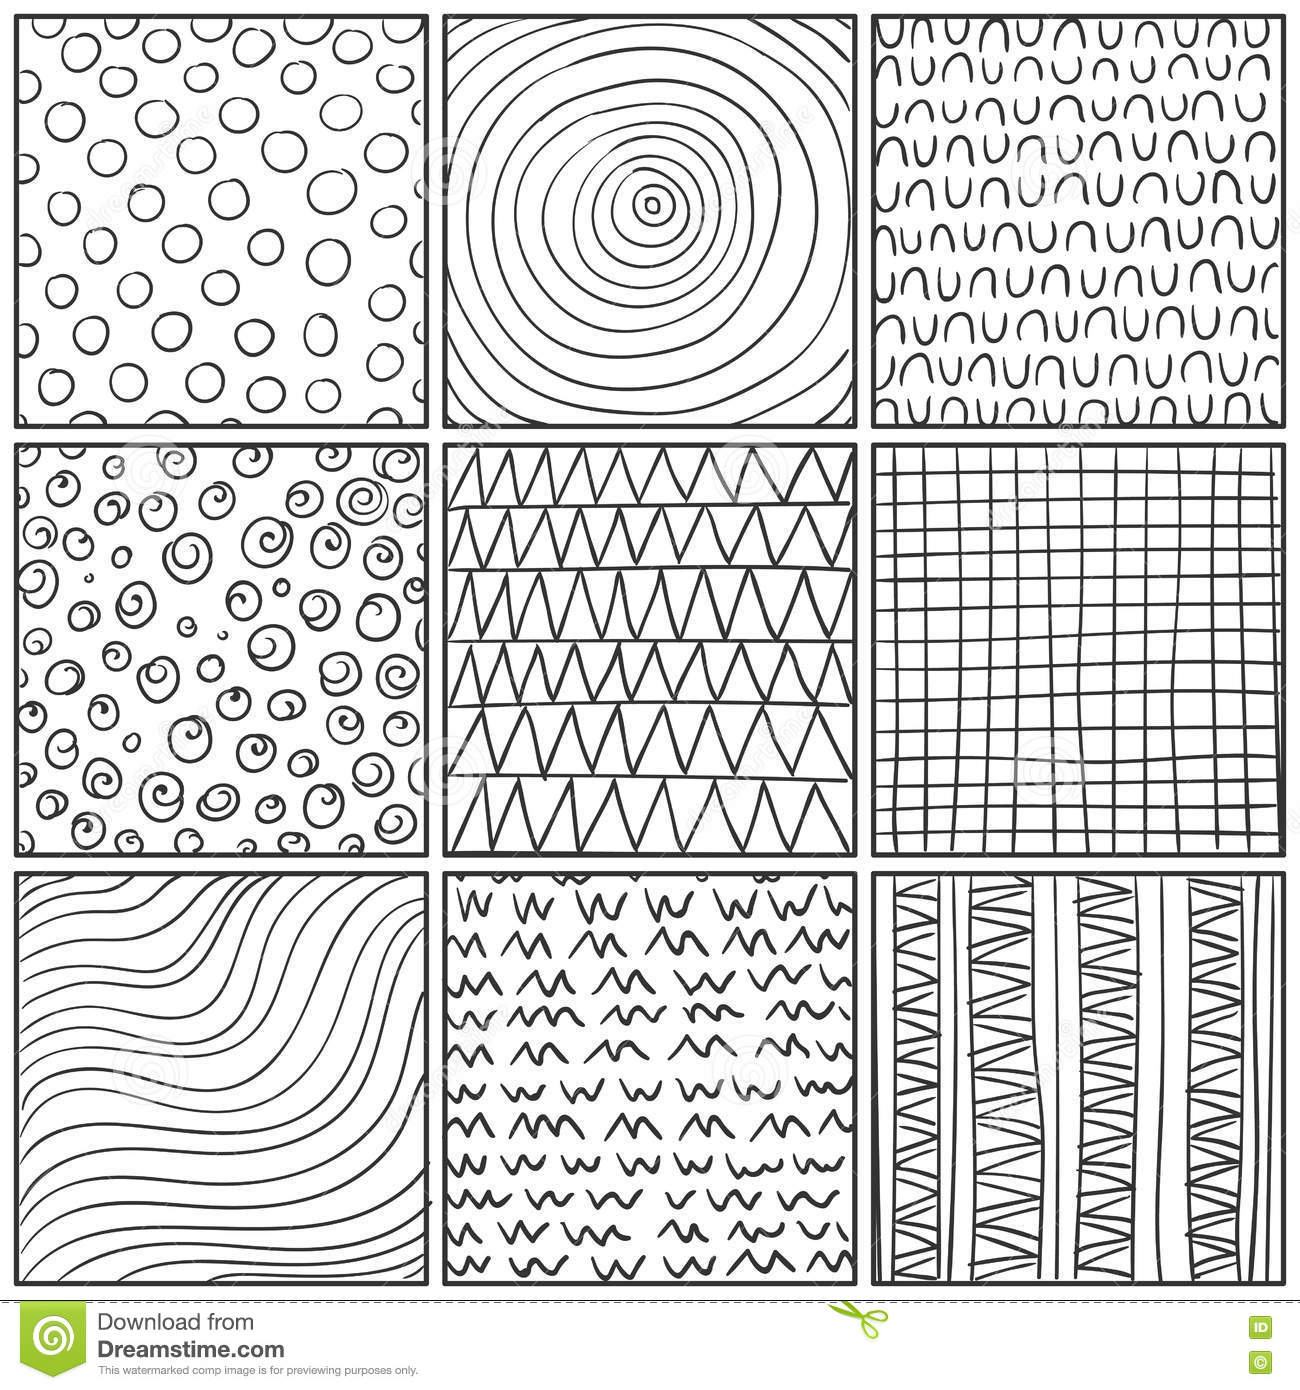 Elements Of Design Line Art : Abstract line drawing design elements stock illustration